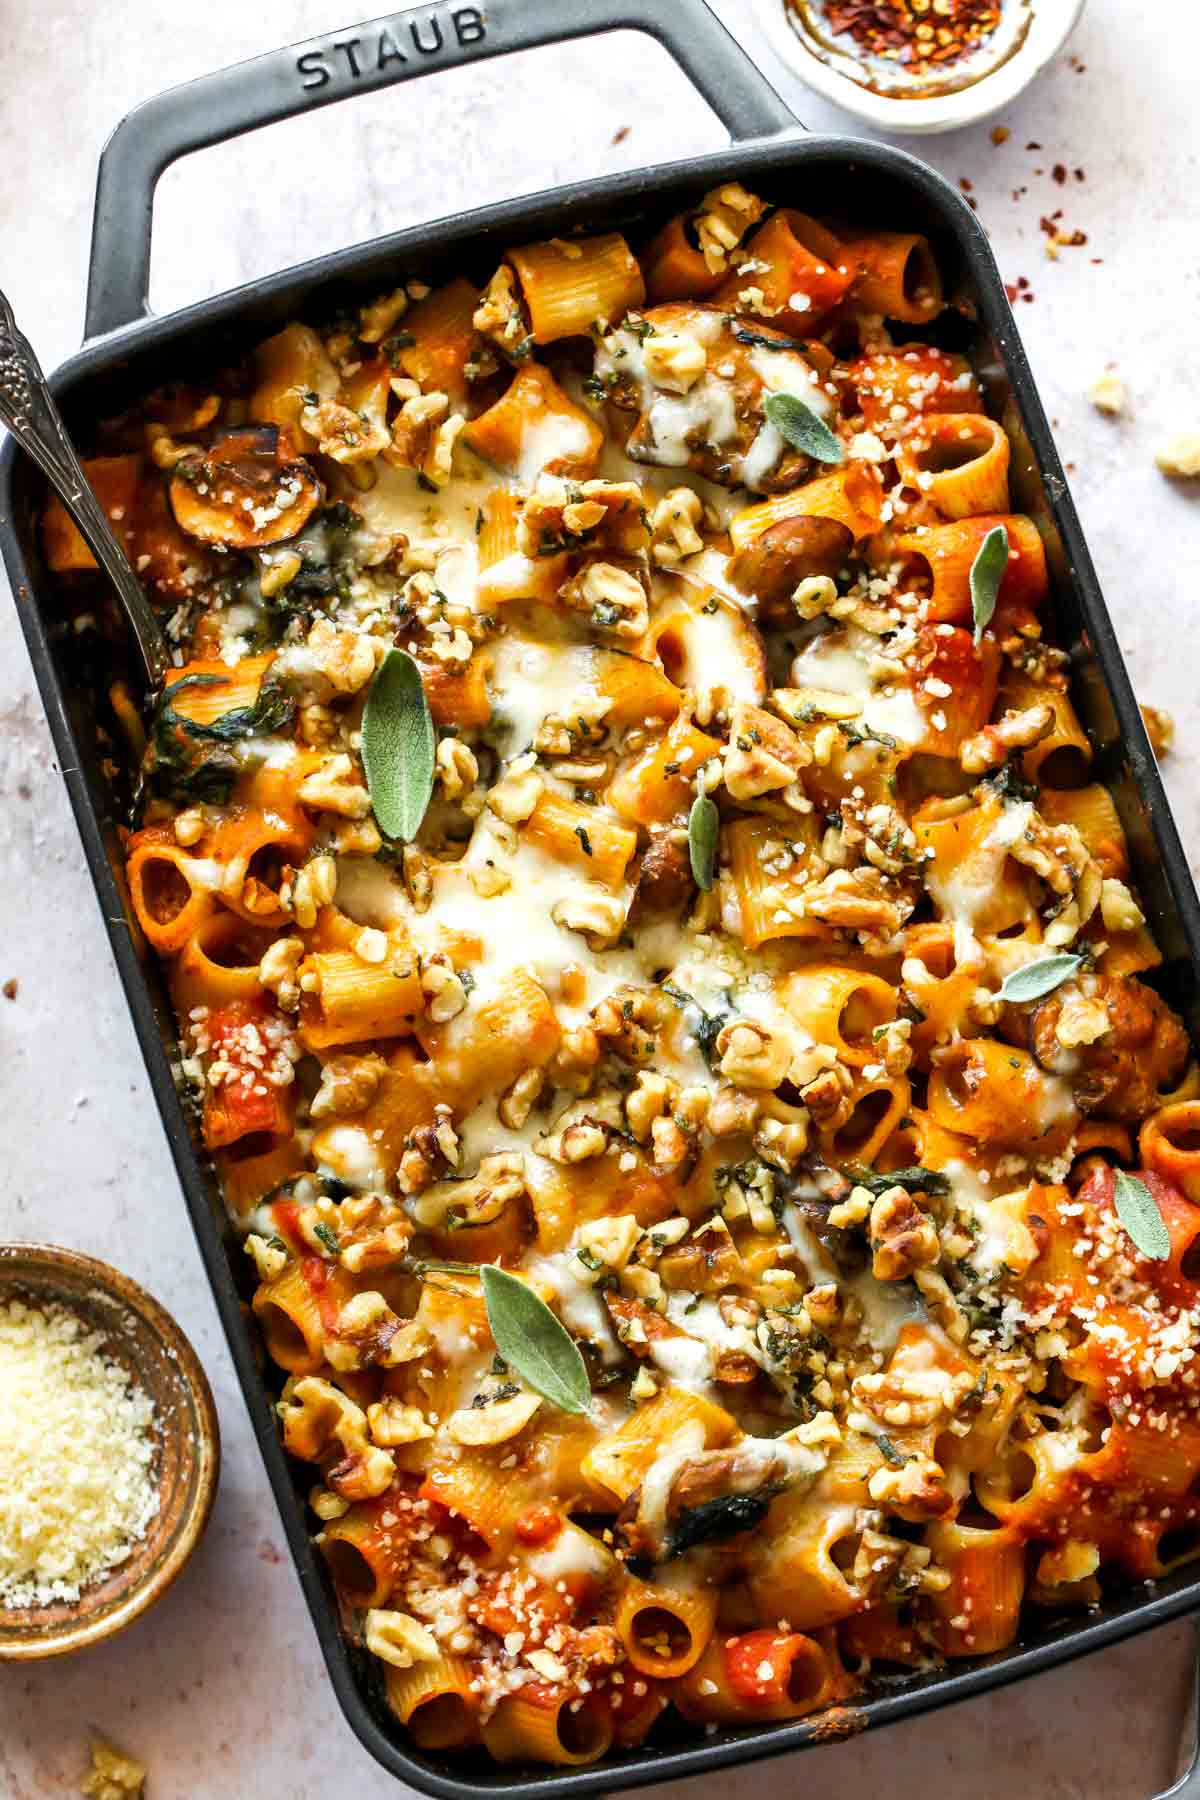 Rigatoni in a baking pan with tomato sauce topped with cheese